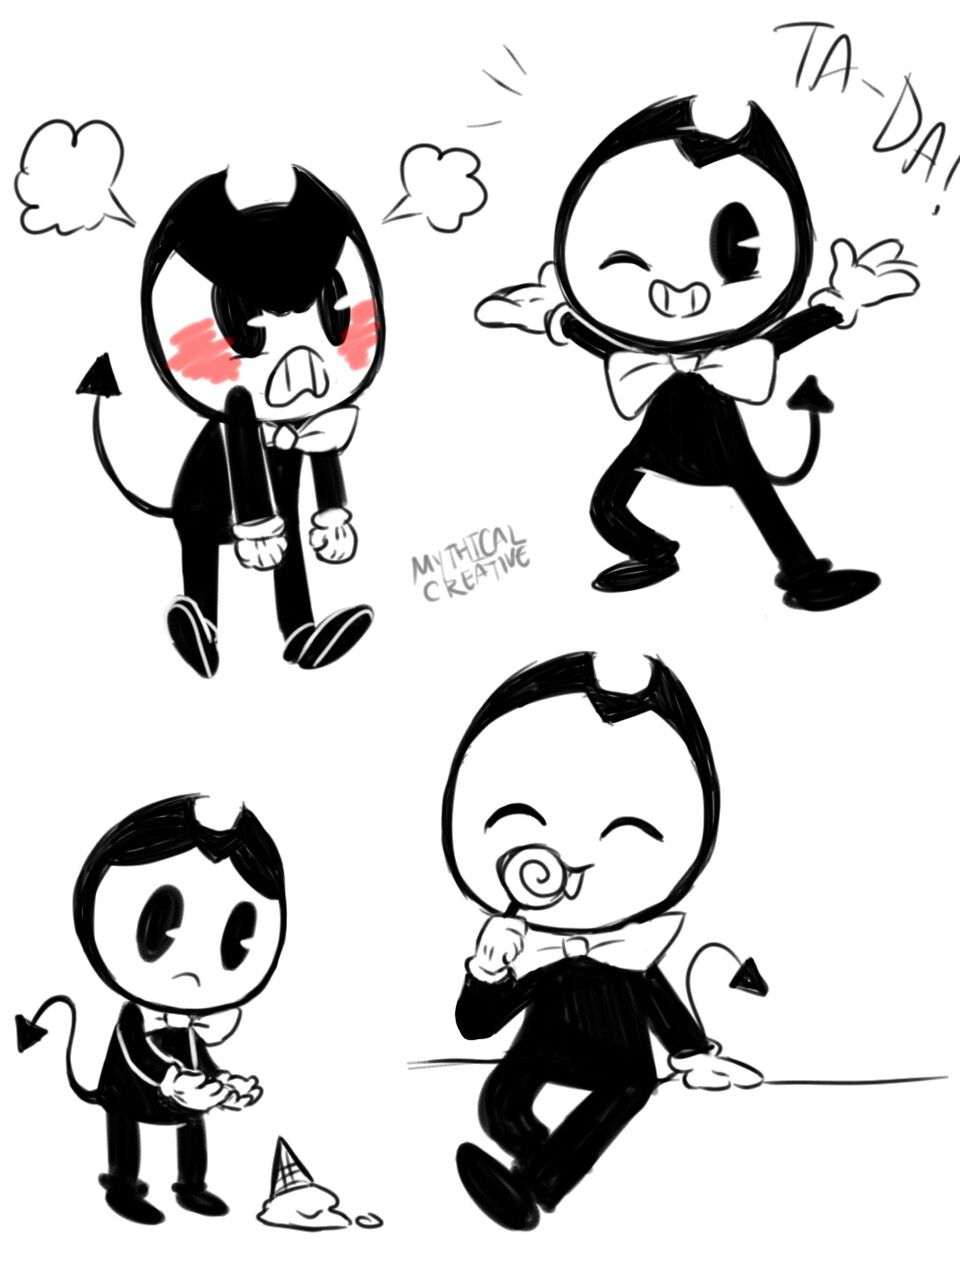 Bendyandtheinkmachine Fnaf Bendy And The Ink Machine Fandoms Fandom Memes Smol